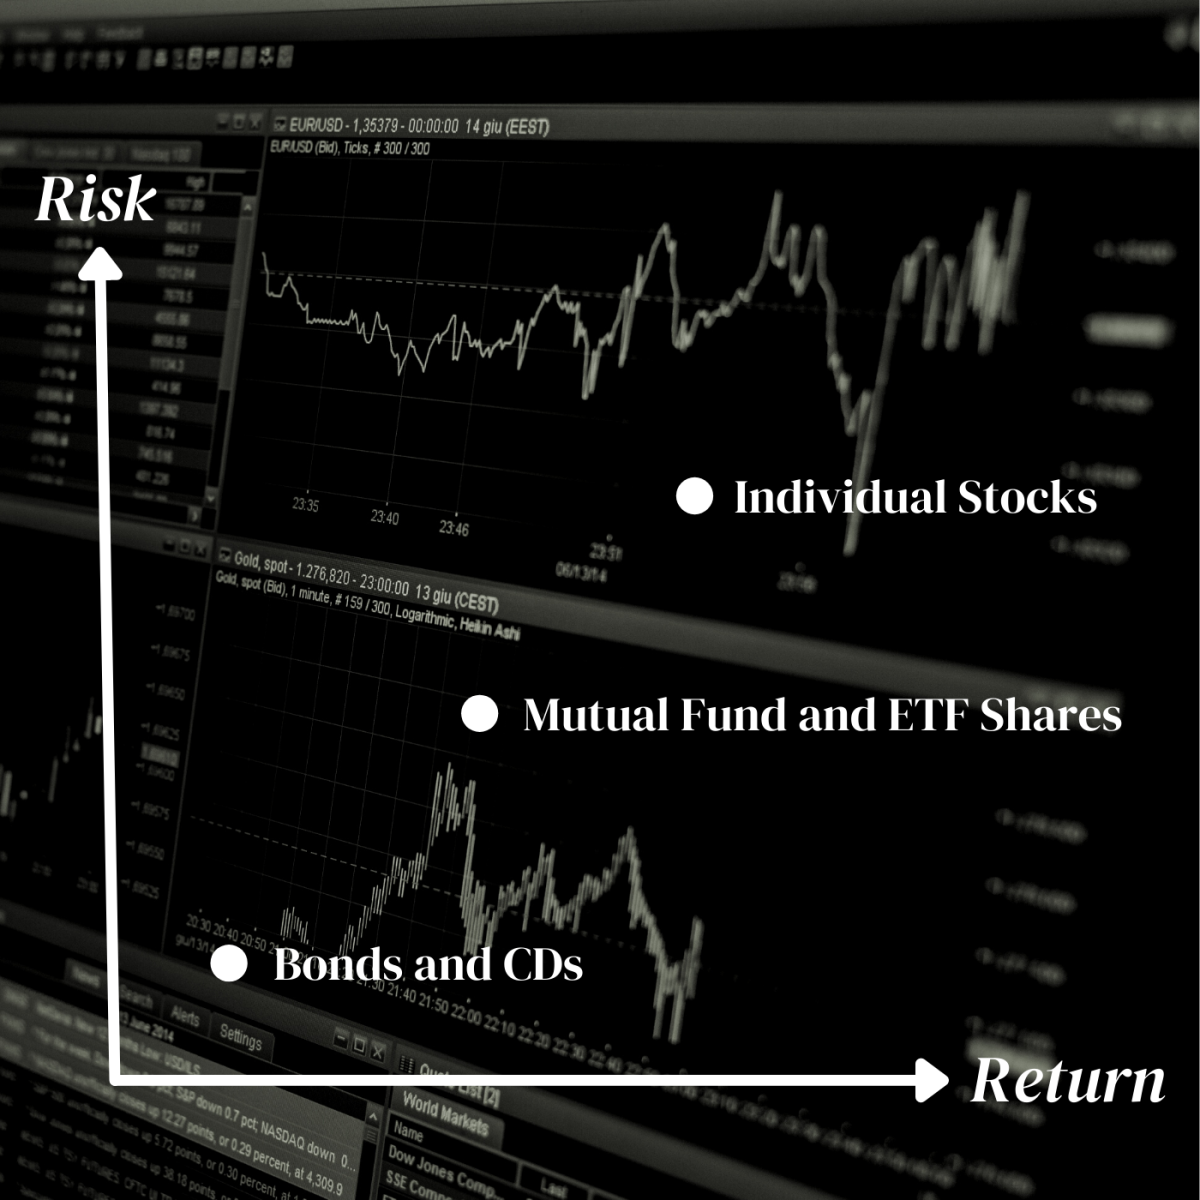 """Graph with """"Risk"""" as the Y axis and """"Return"""" as the X axis showing that bonds and CDs have the lowest risk and return, mutual finds and ETFs have higher risk and return, and individual stocks have even higher risk and return"""